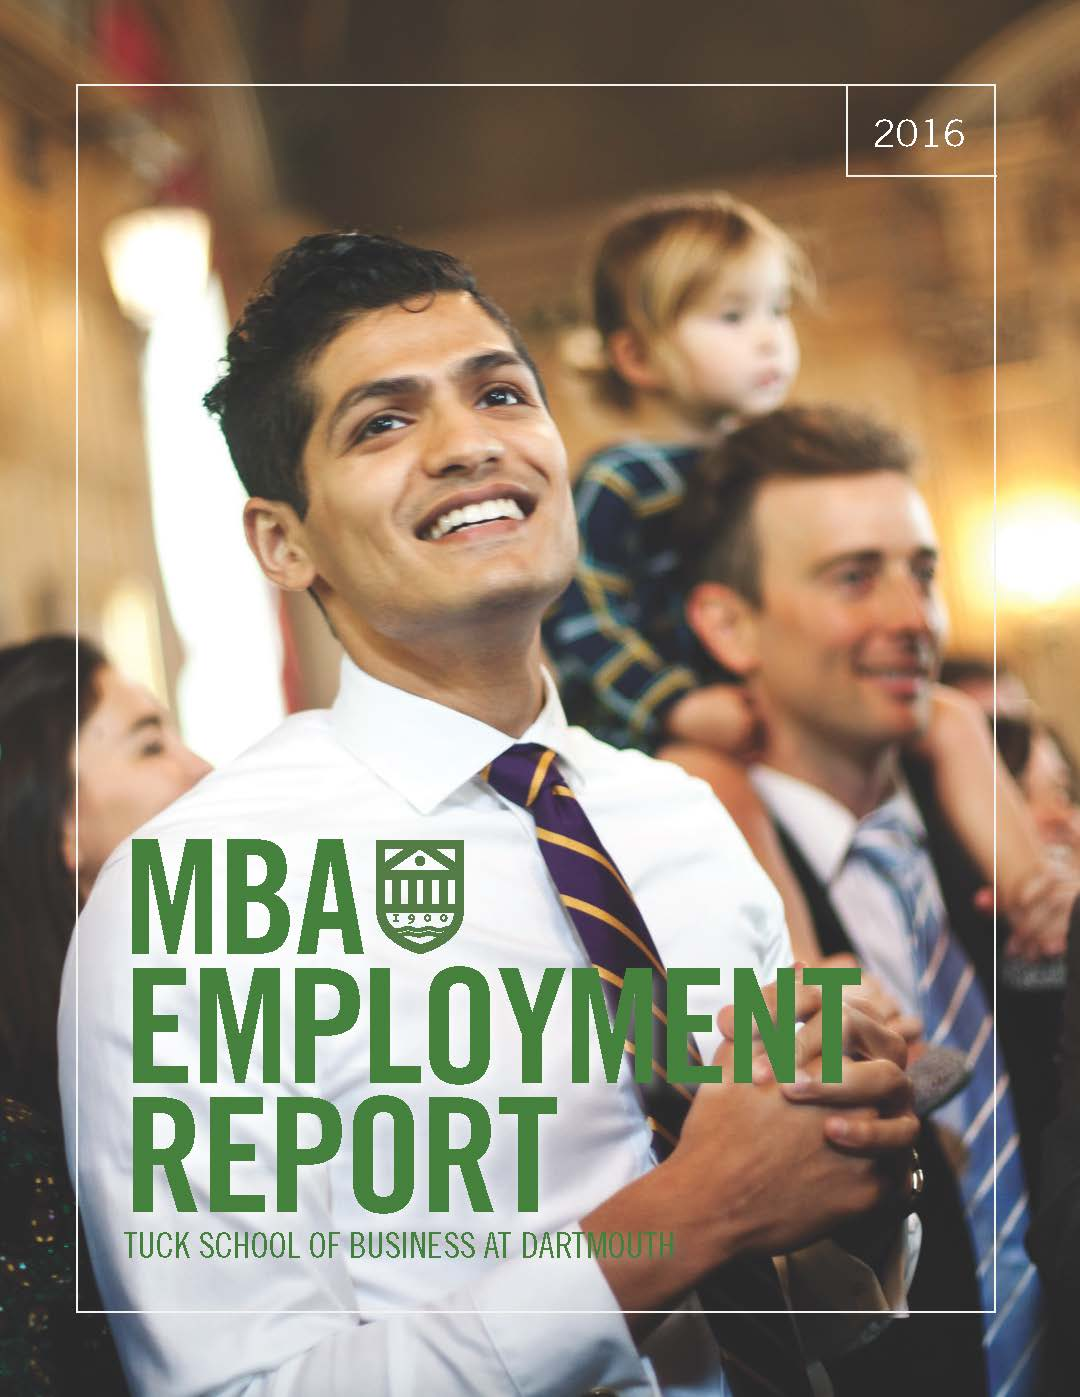 2016 MBA Employment Report